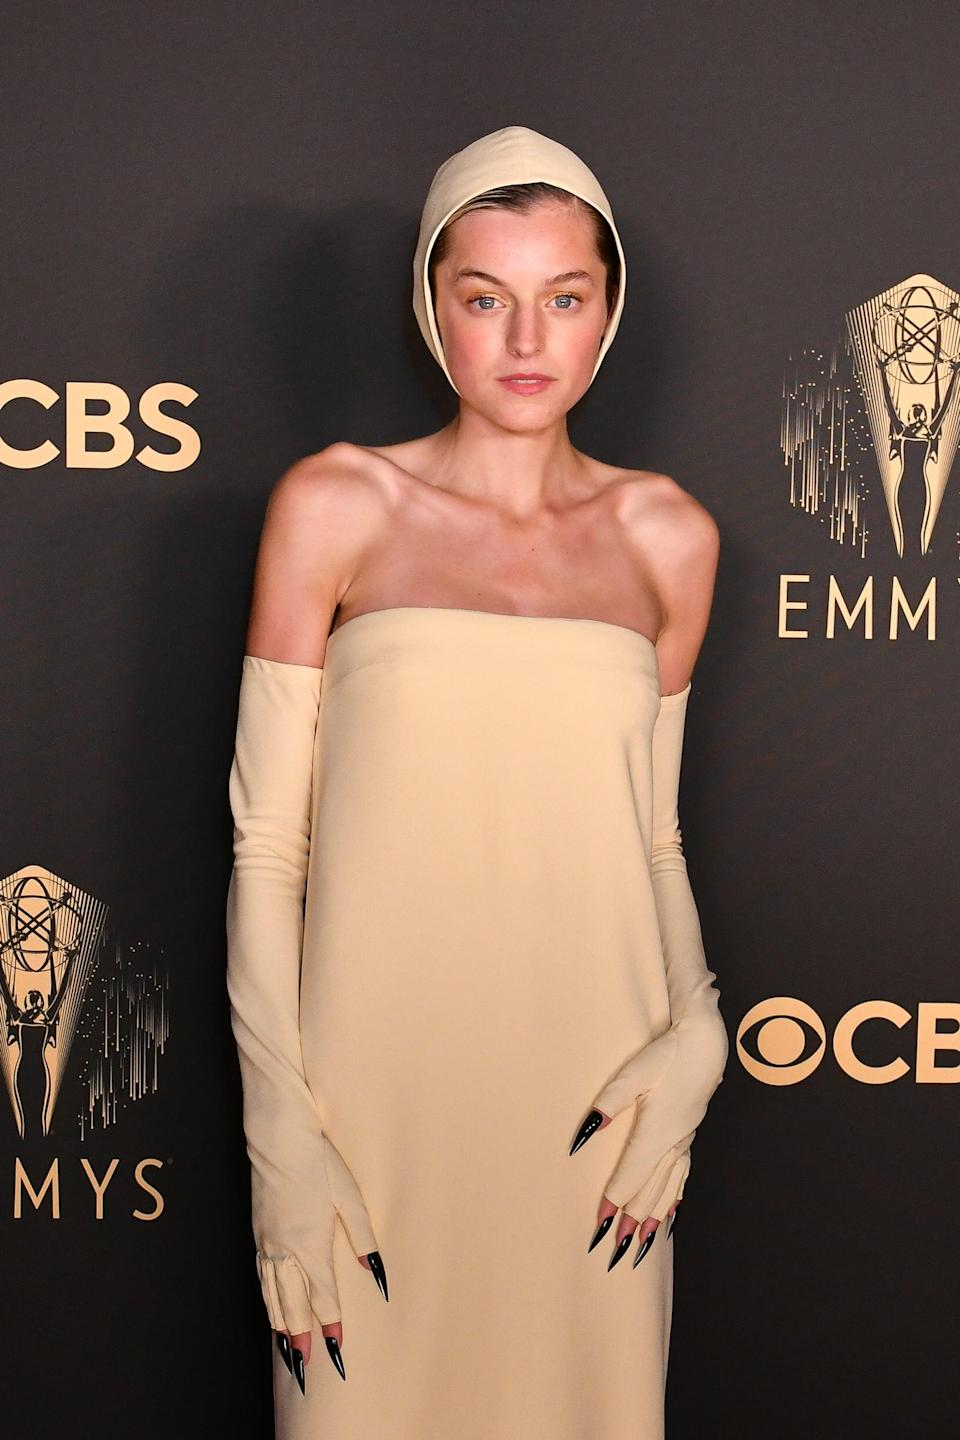 Emma Corrin's All-Black Stiletto Nails at the Emmys Are Scary Good